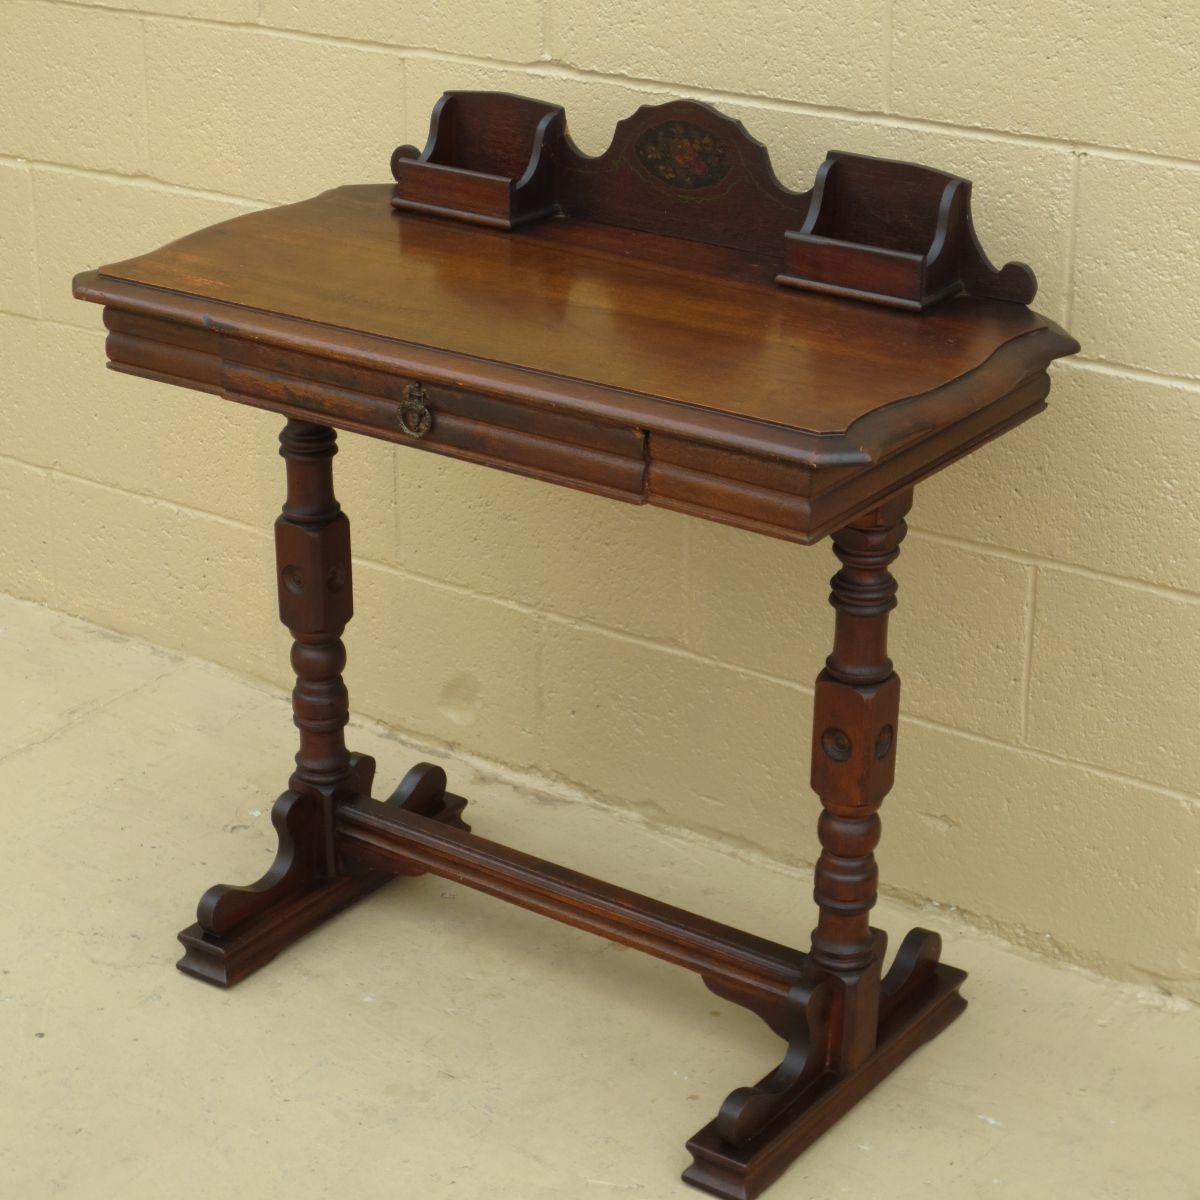 Antique Writing Table Desk - Antique Writing Table Desk Antique Furniture